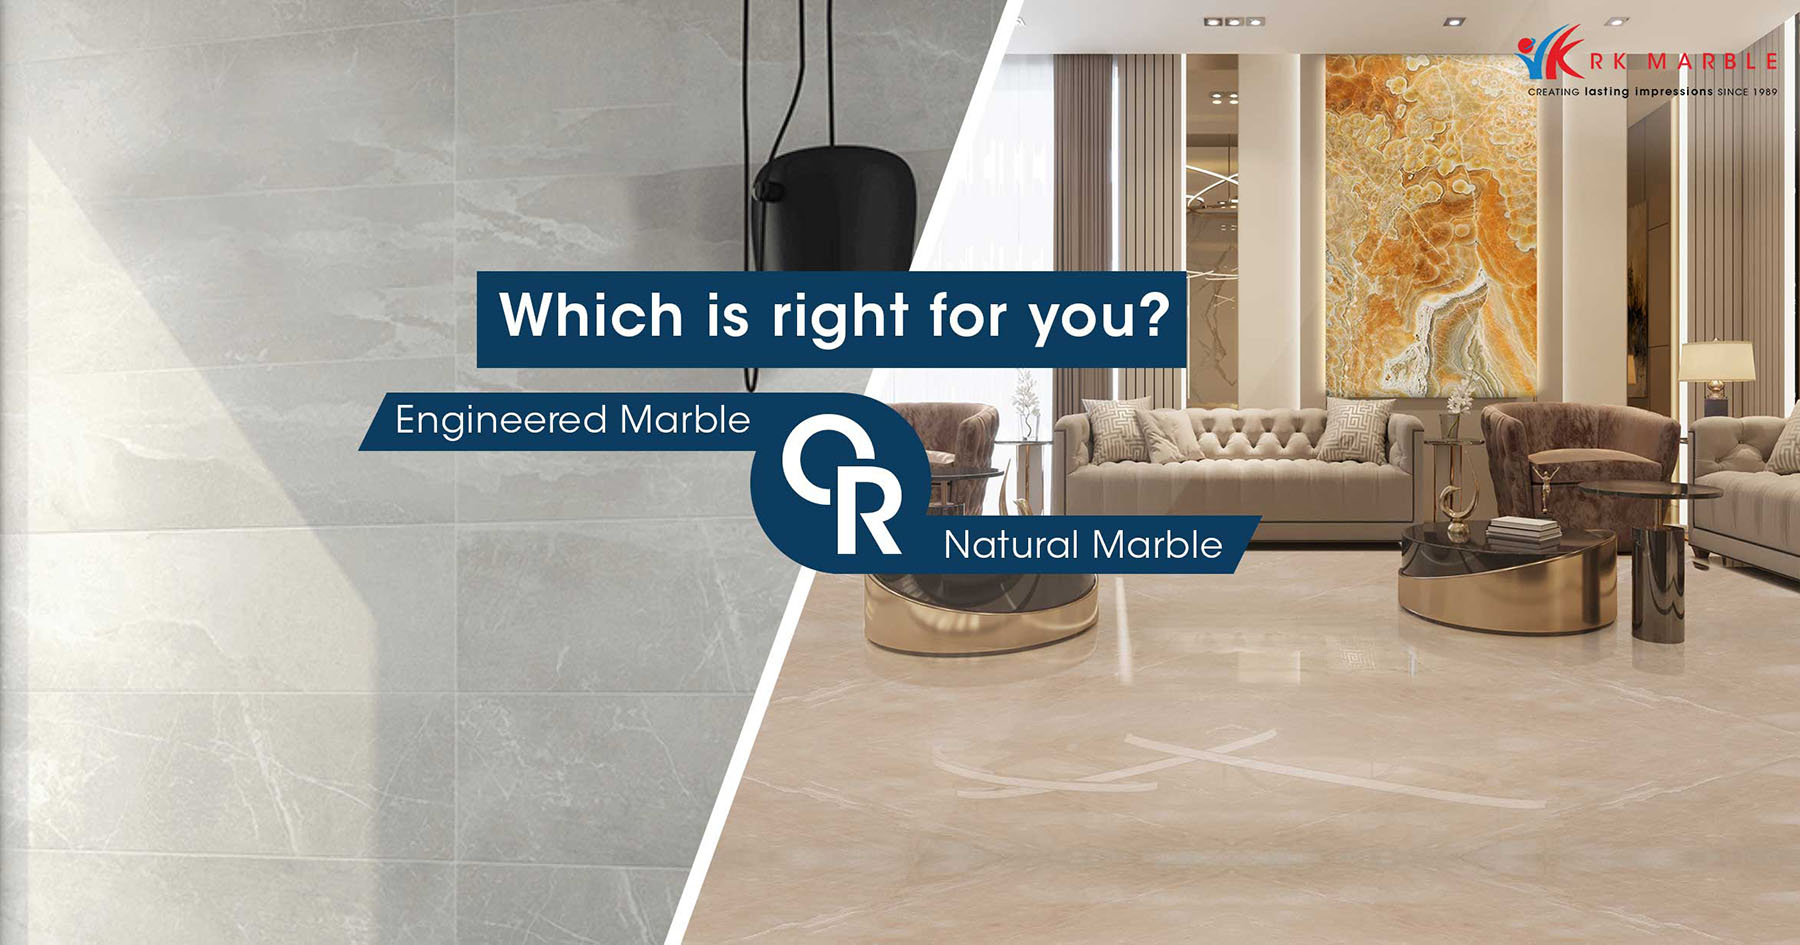 Engineered Marble or Natural Marble: Which one is right for you?